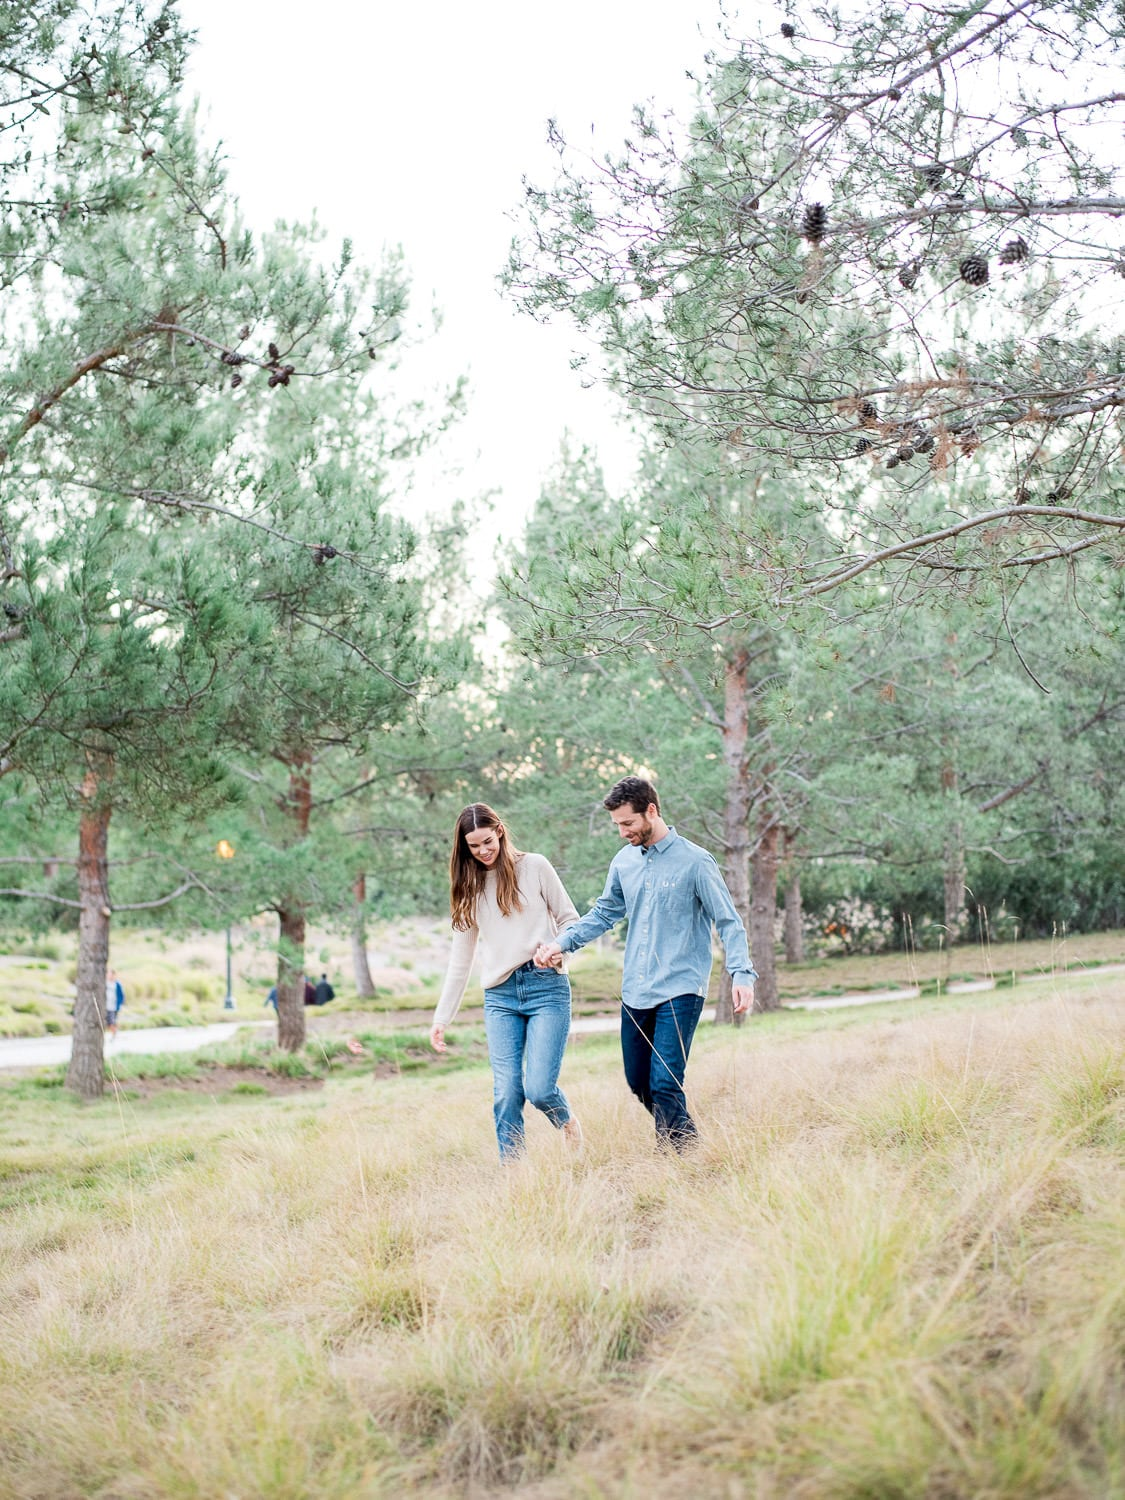 Playful-Engagement-Orange-County